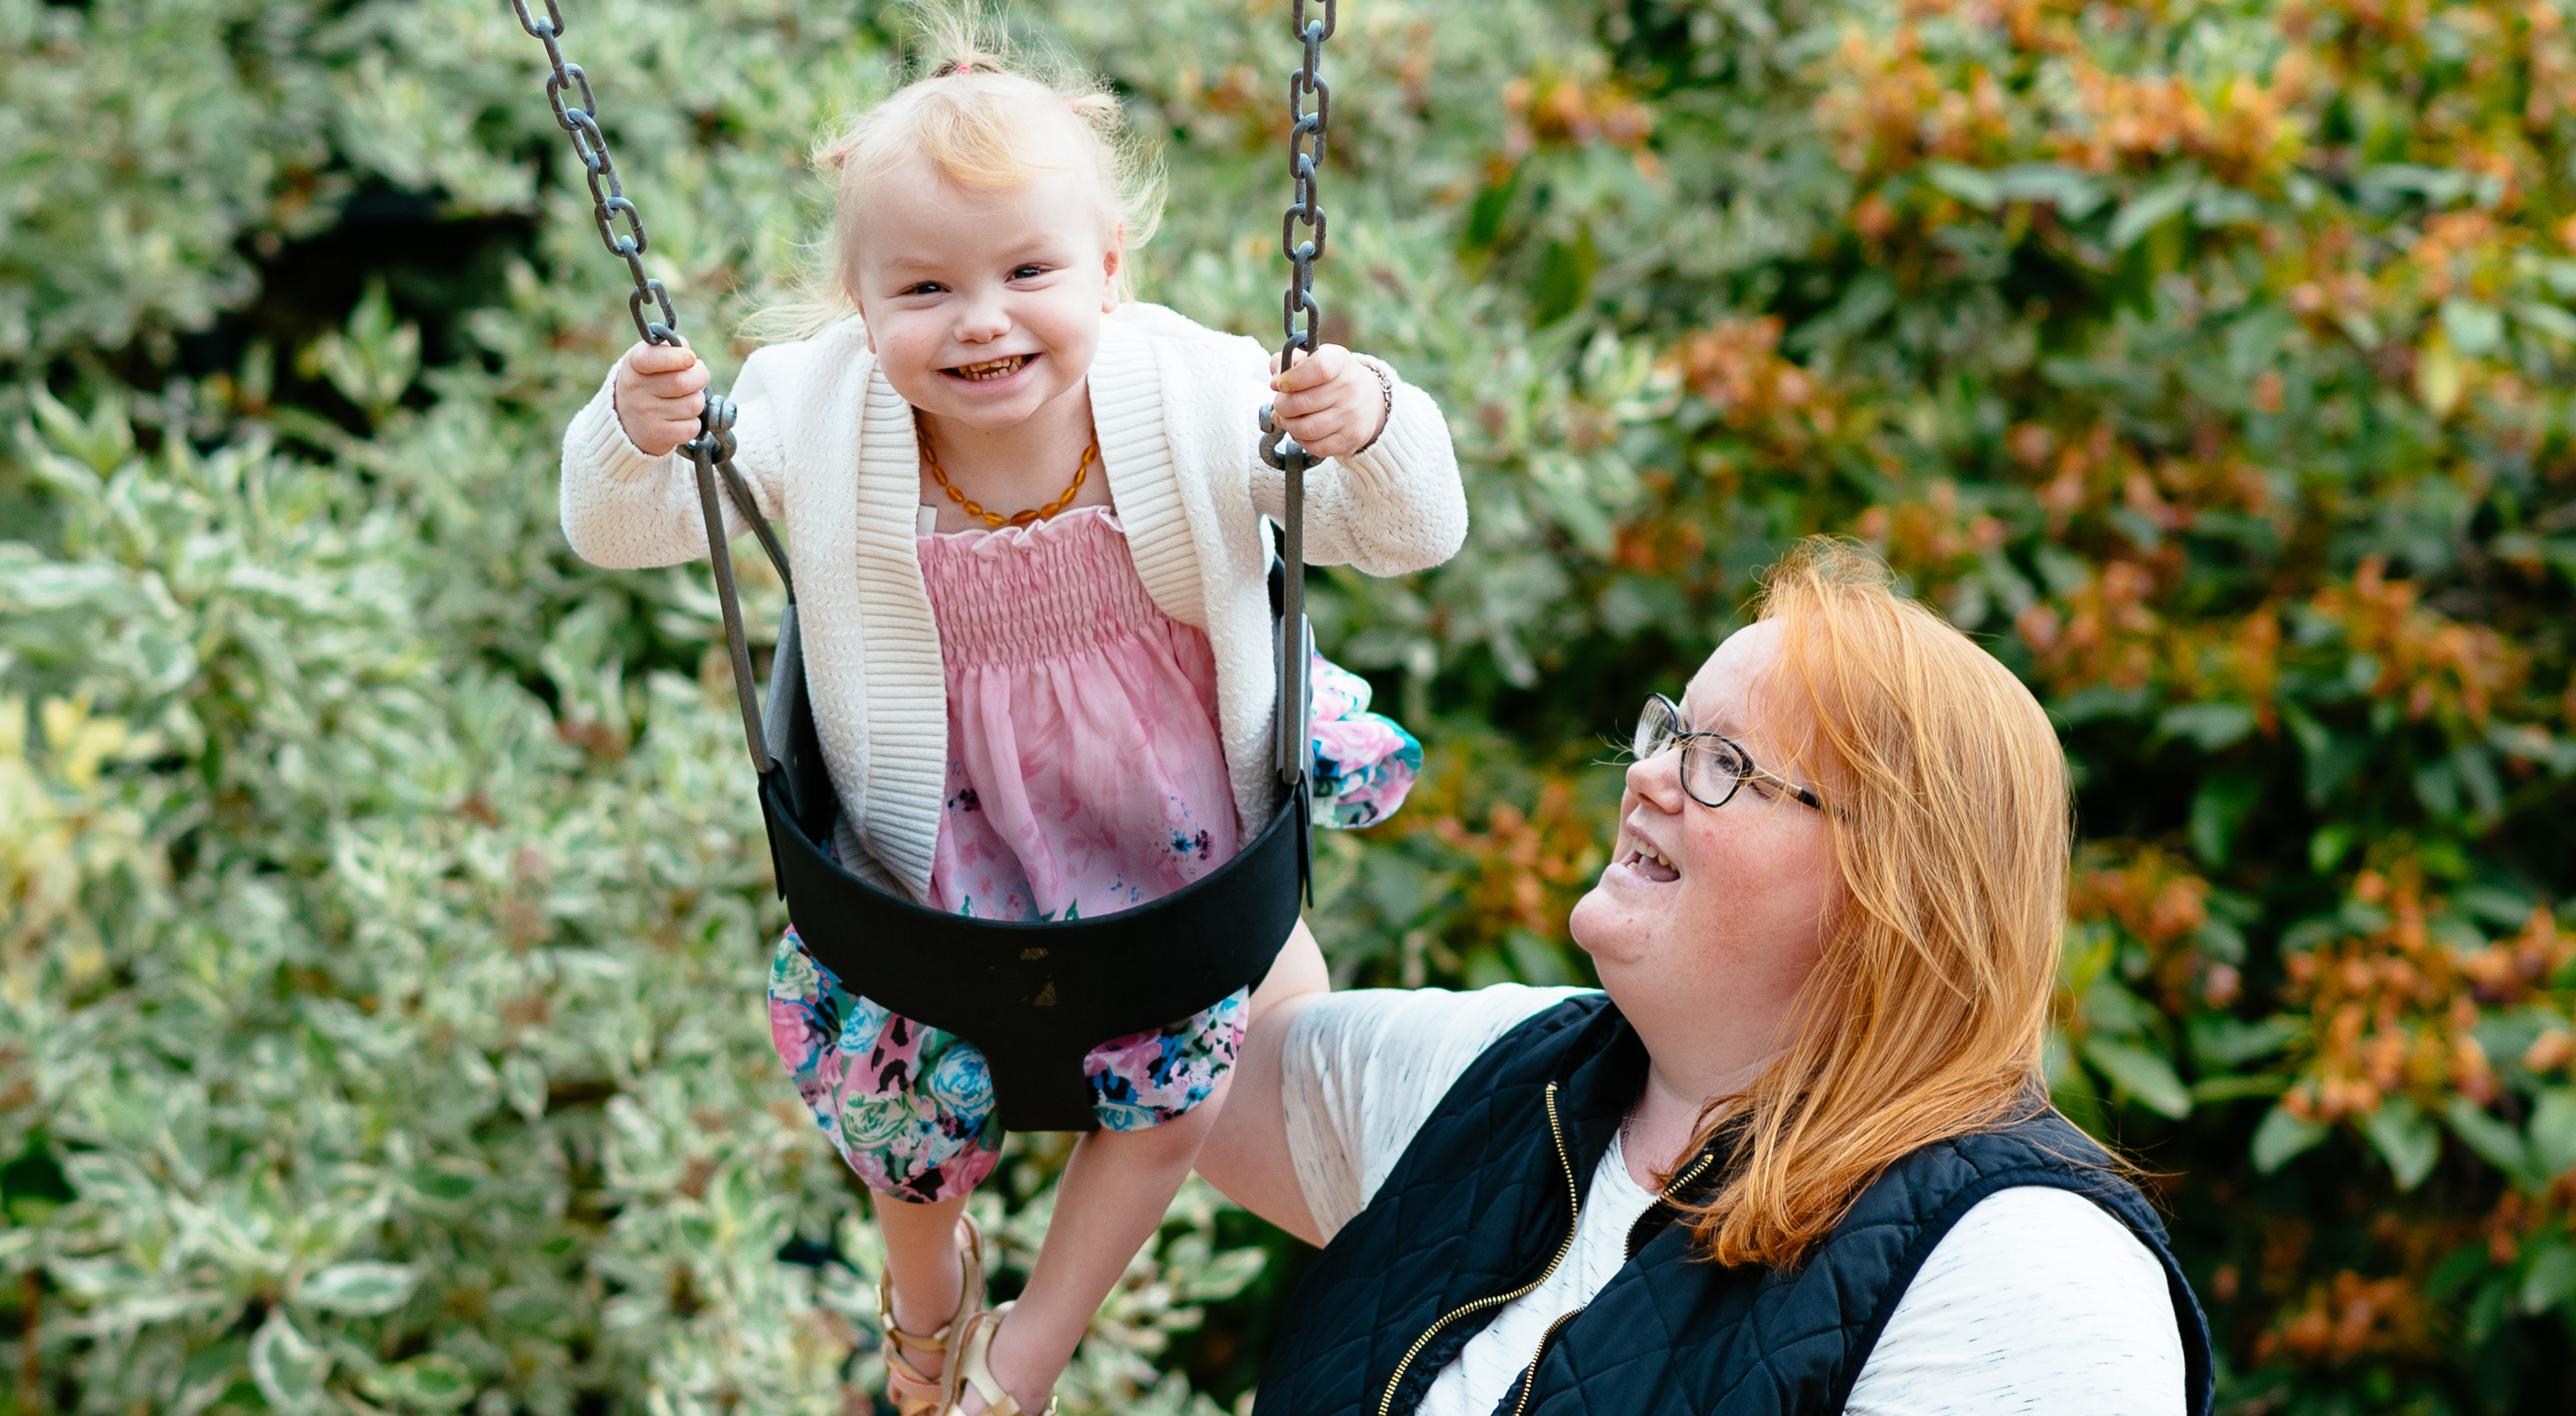 Constance, a three-year-old girl with a ponytail, plays on the swings as her mother looks on